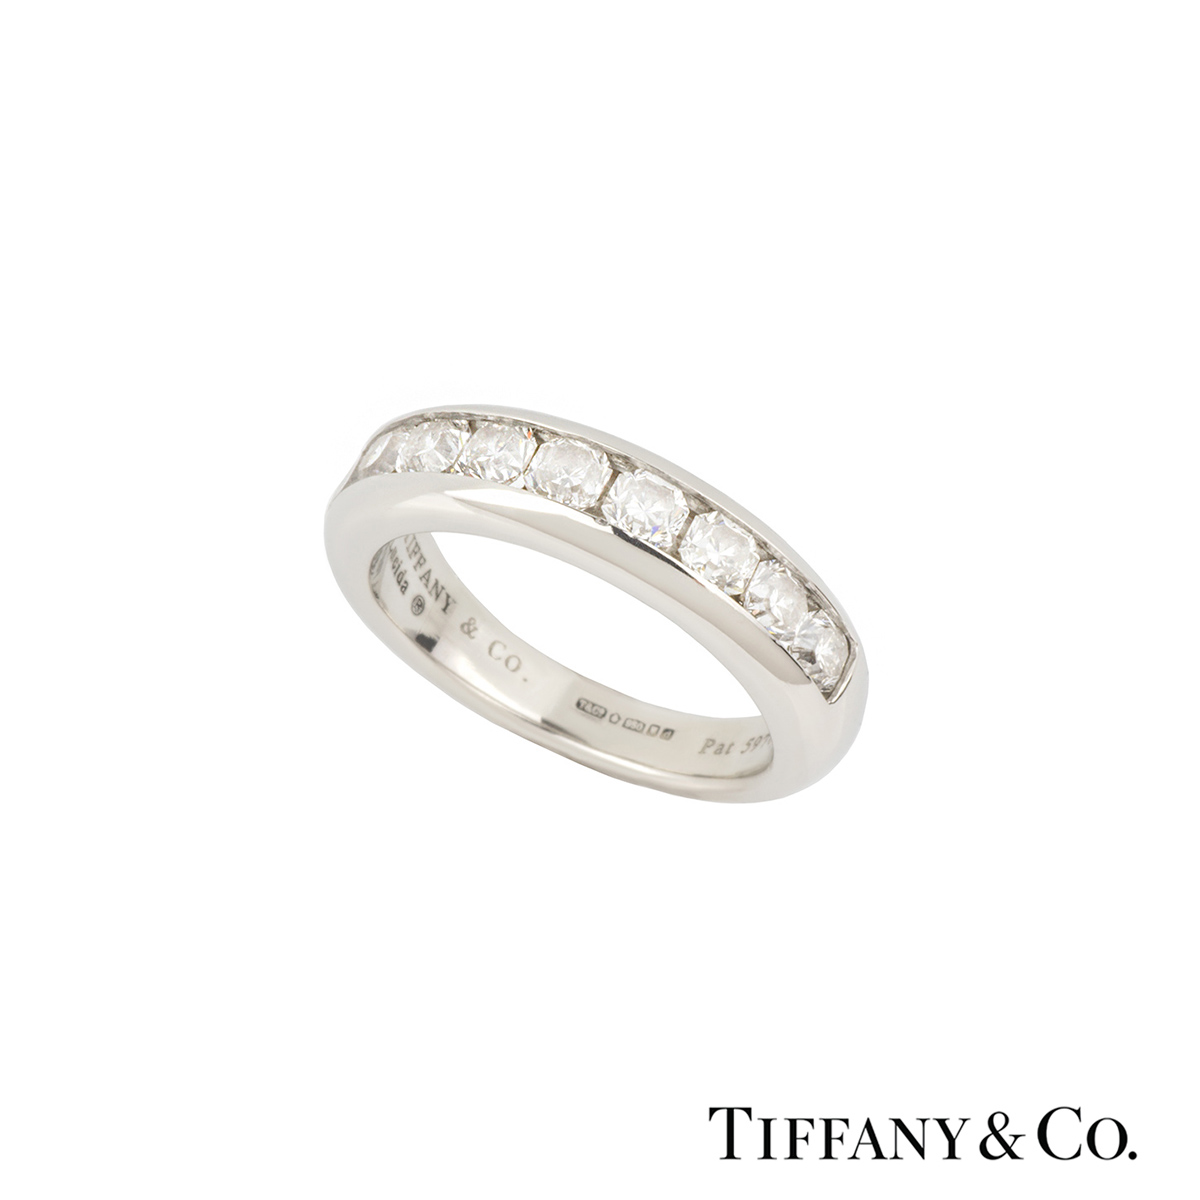 Tiffany & Co. Lucida Cut Diamond Half Eternity Ring in Platinum 0.70ct